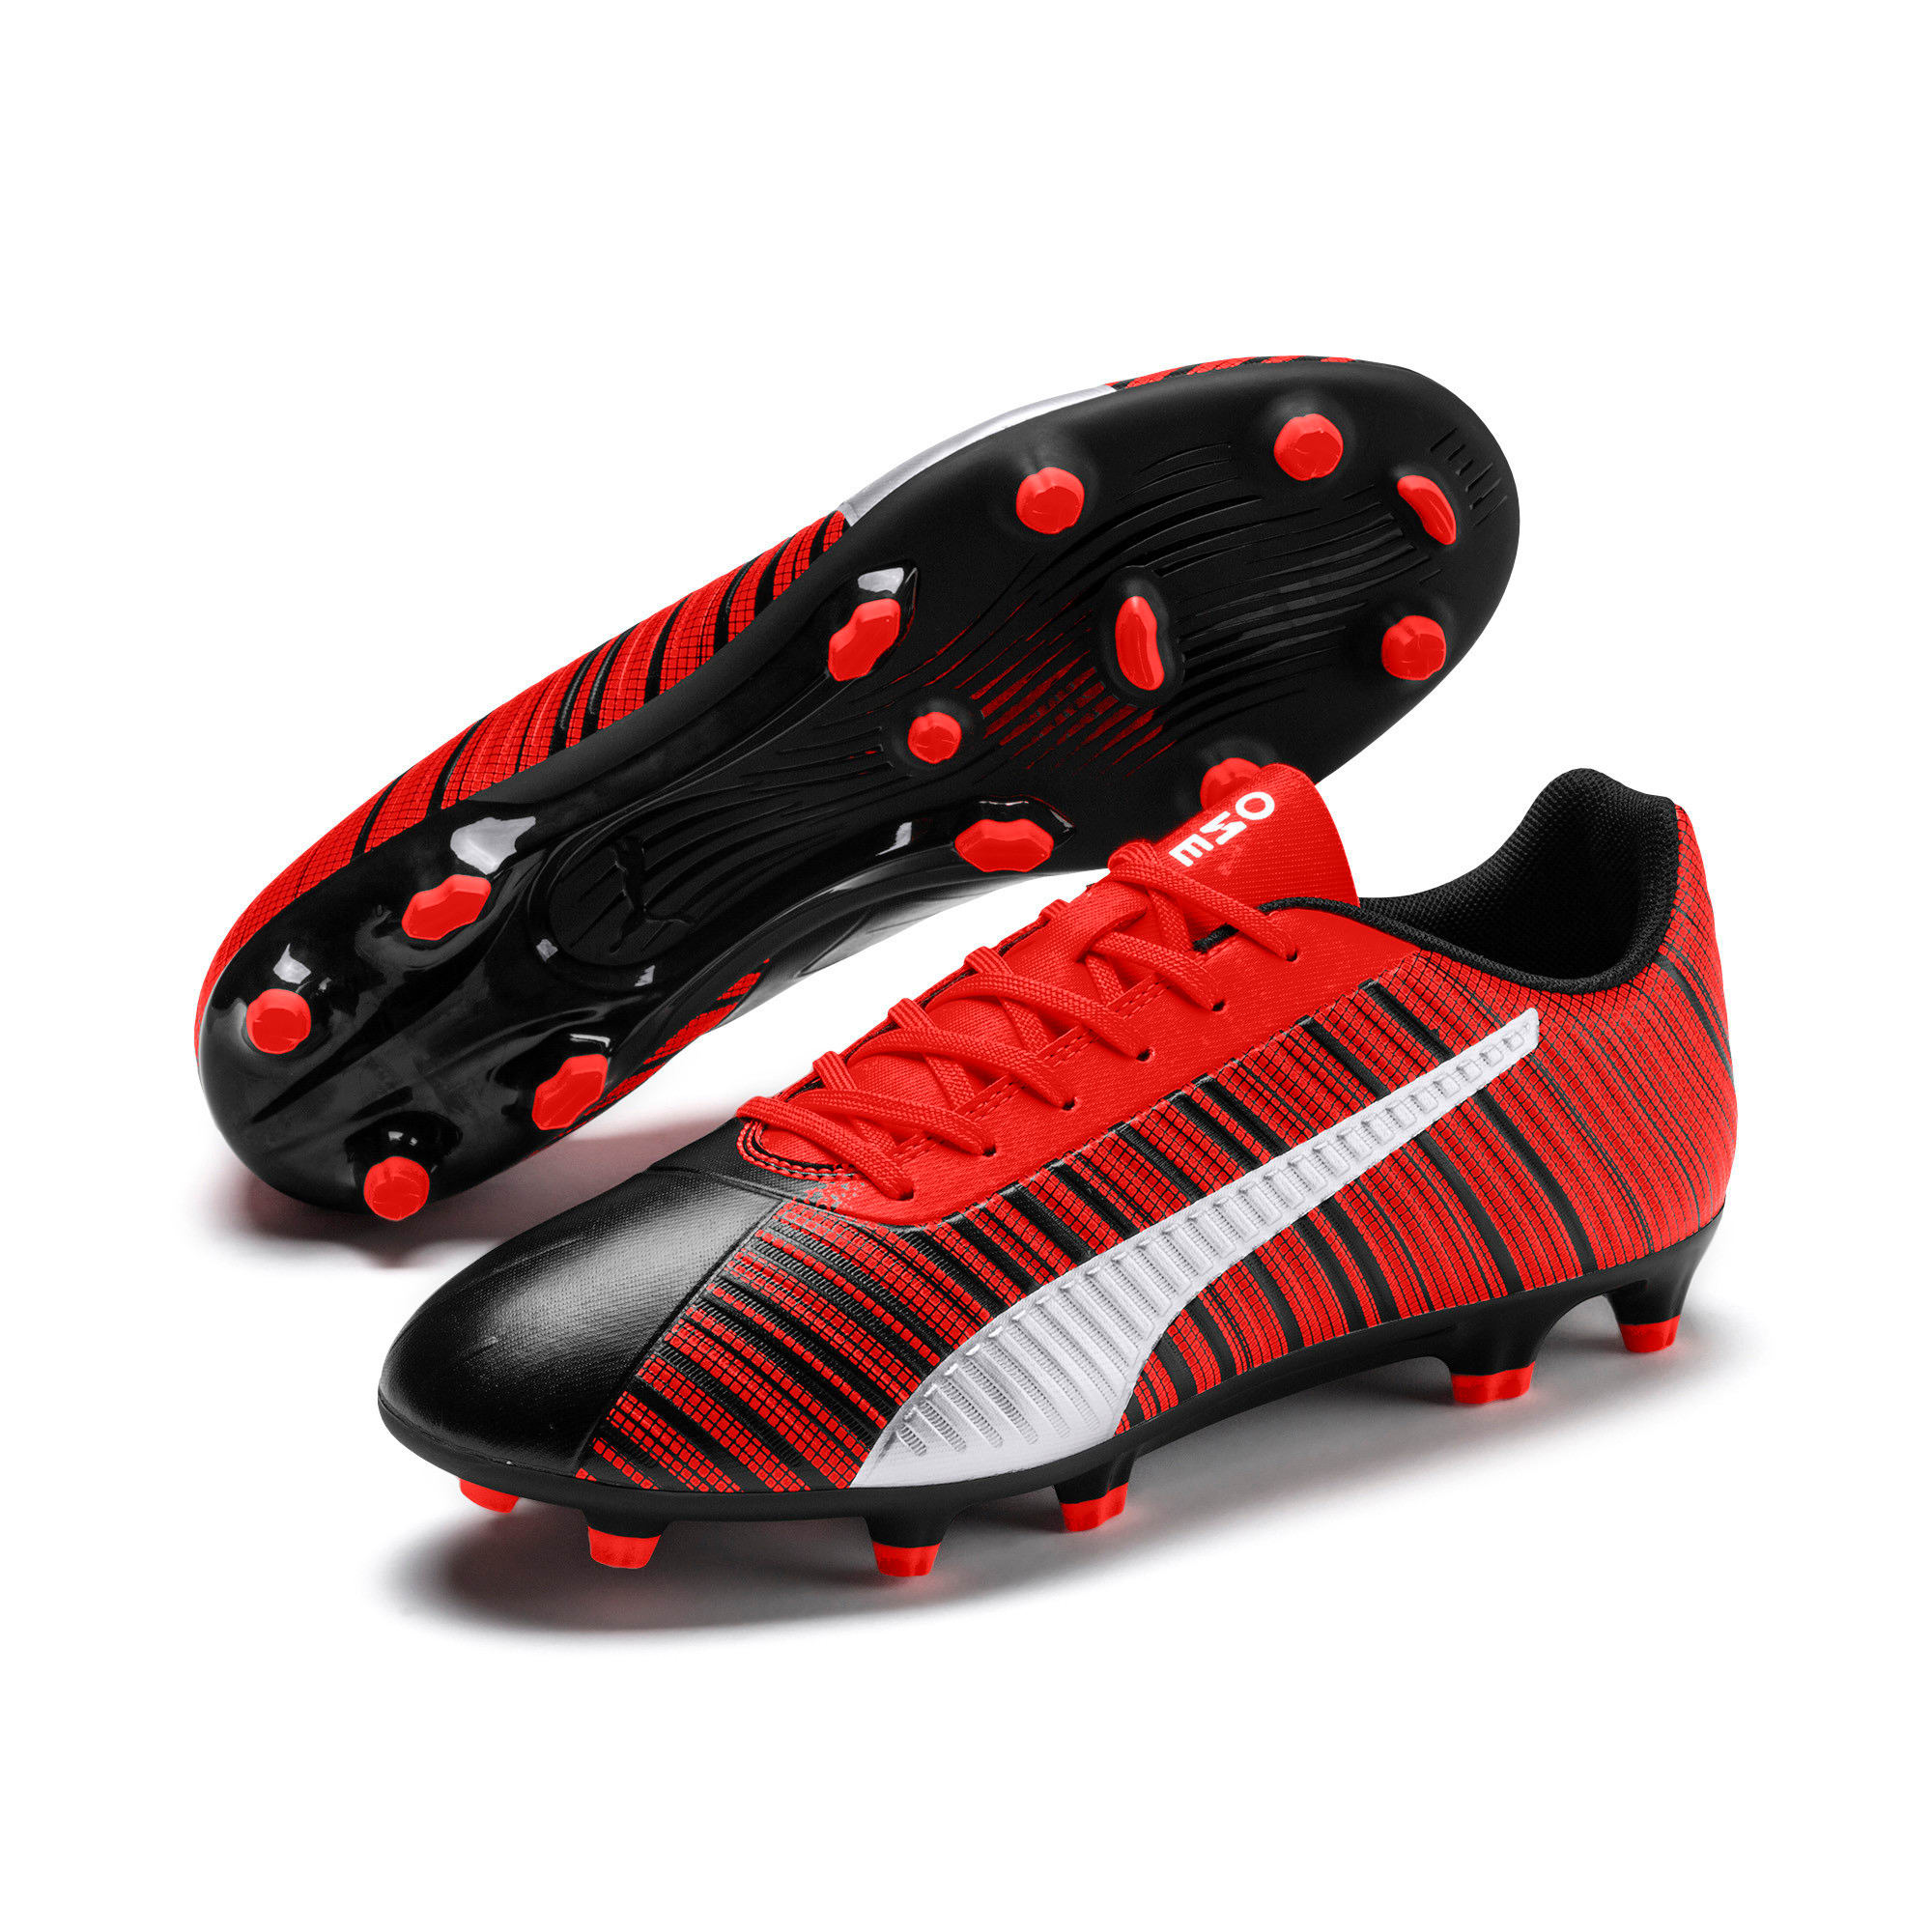 Thumbnail 3 of PUMA ONE 5.4 Men's FG/AG Football Boots, Black-Nrgy Red-Aged Silver, medium